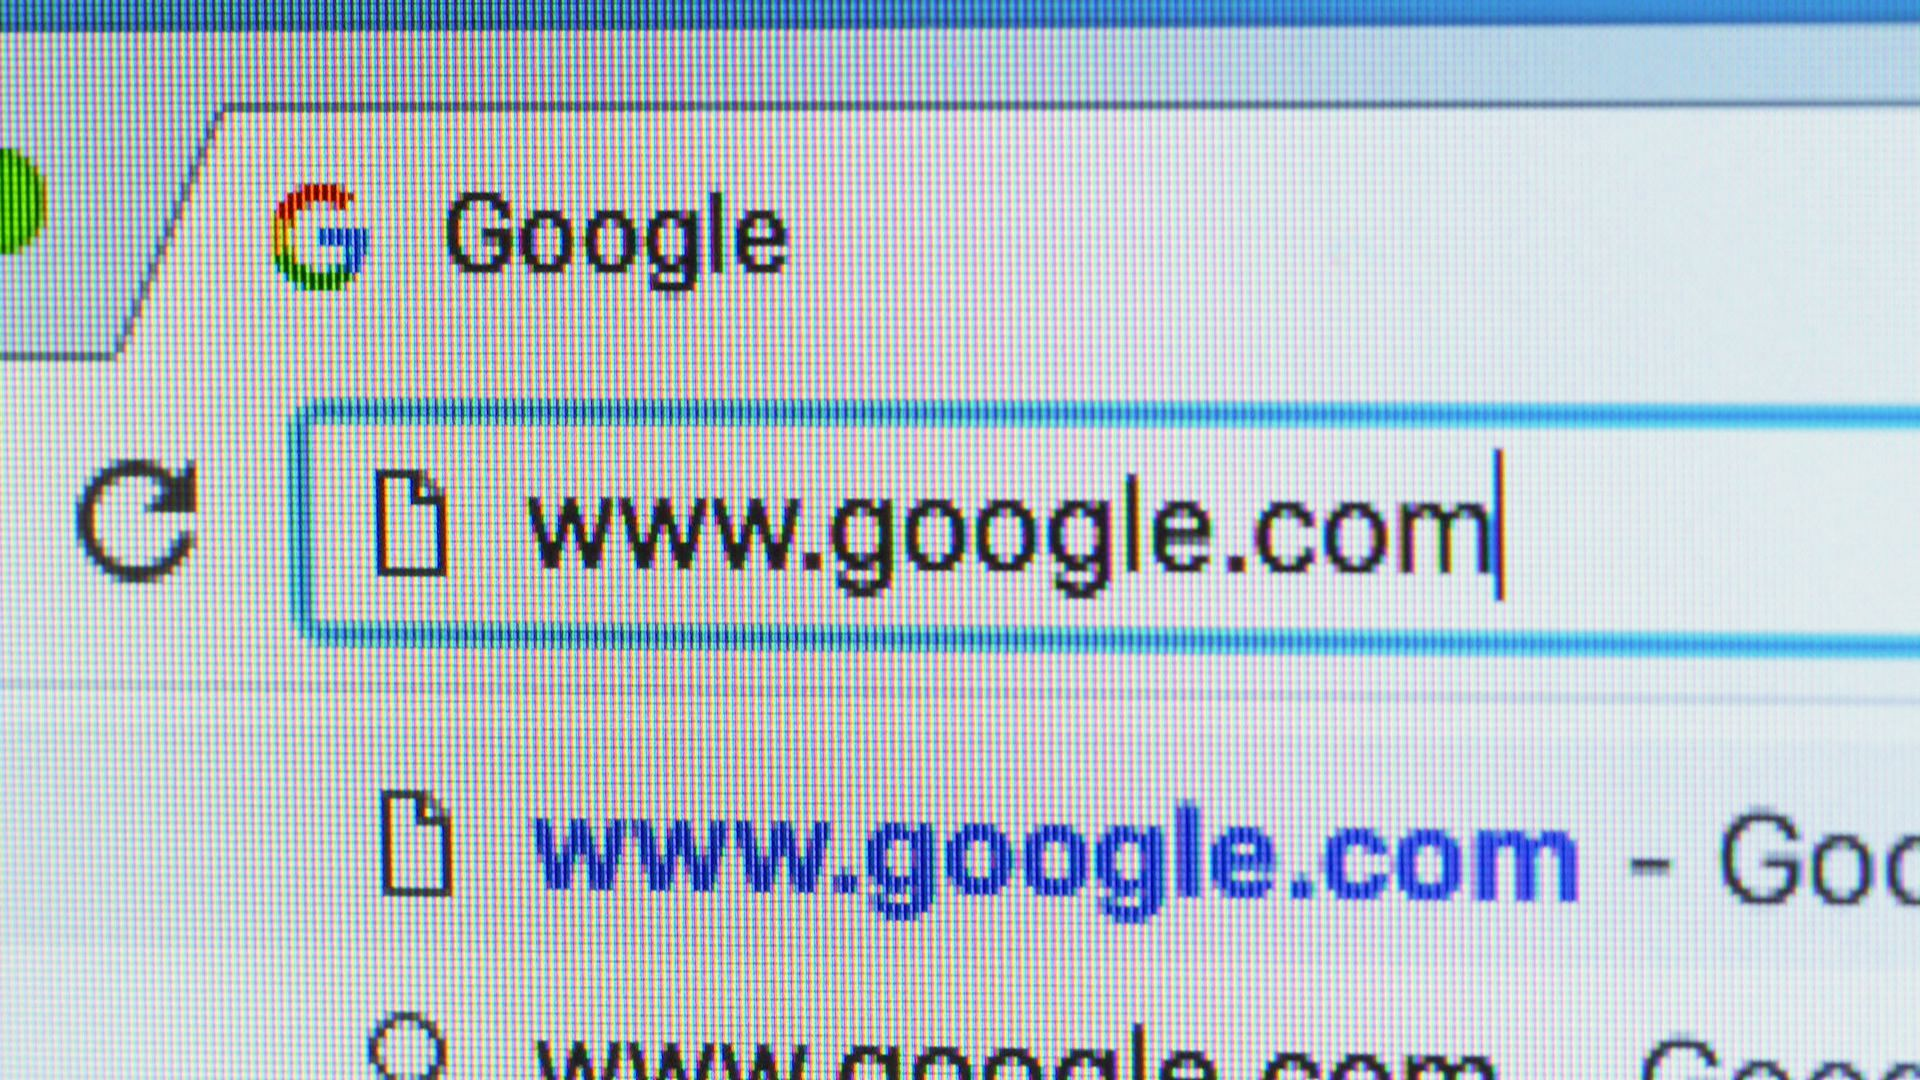 Google.com in a search bar